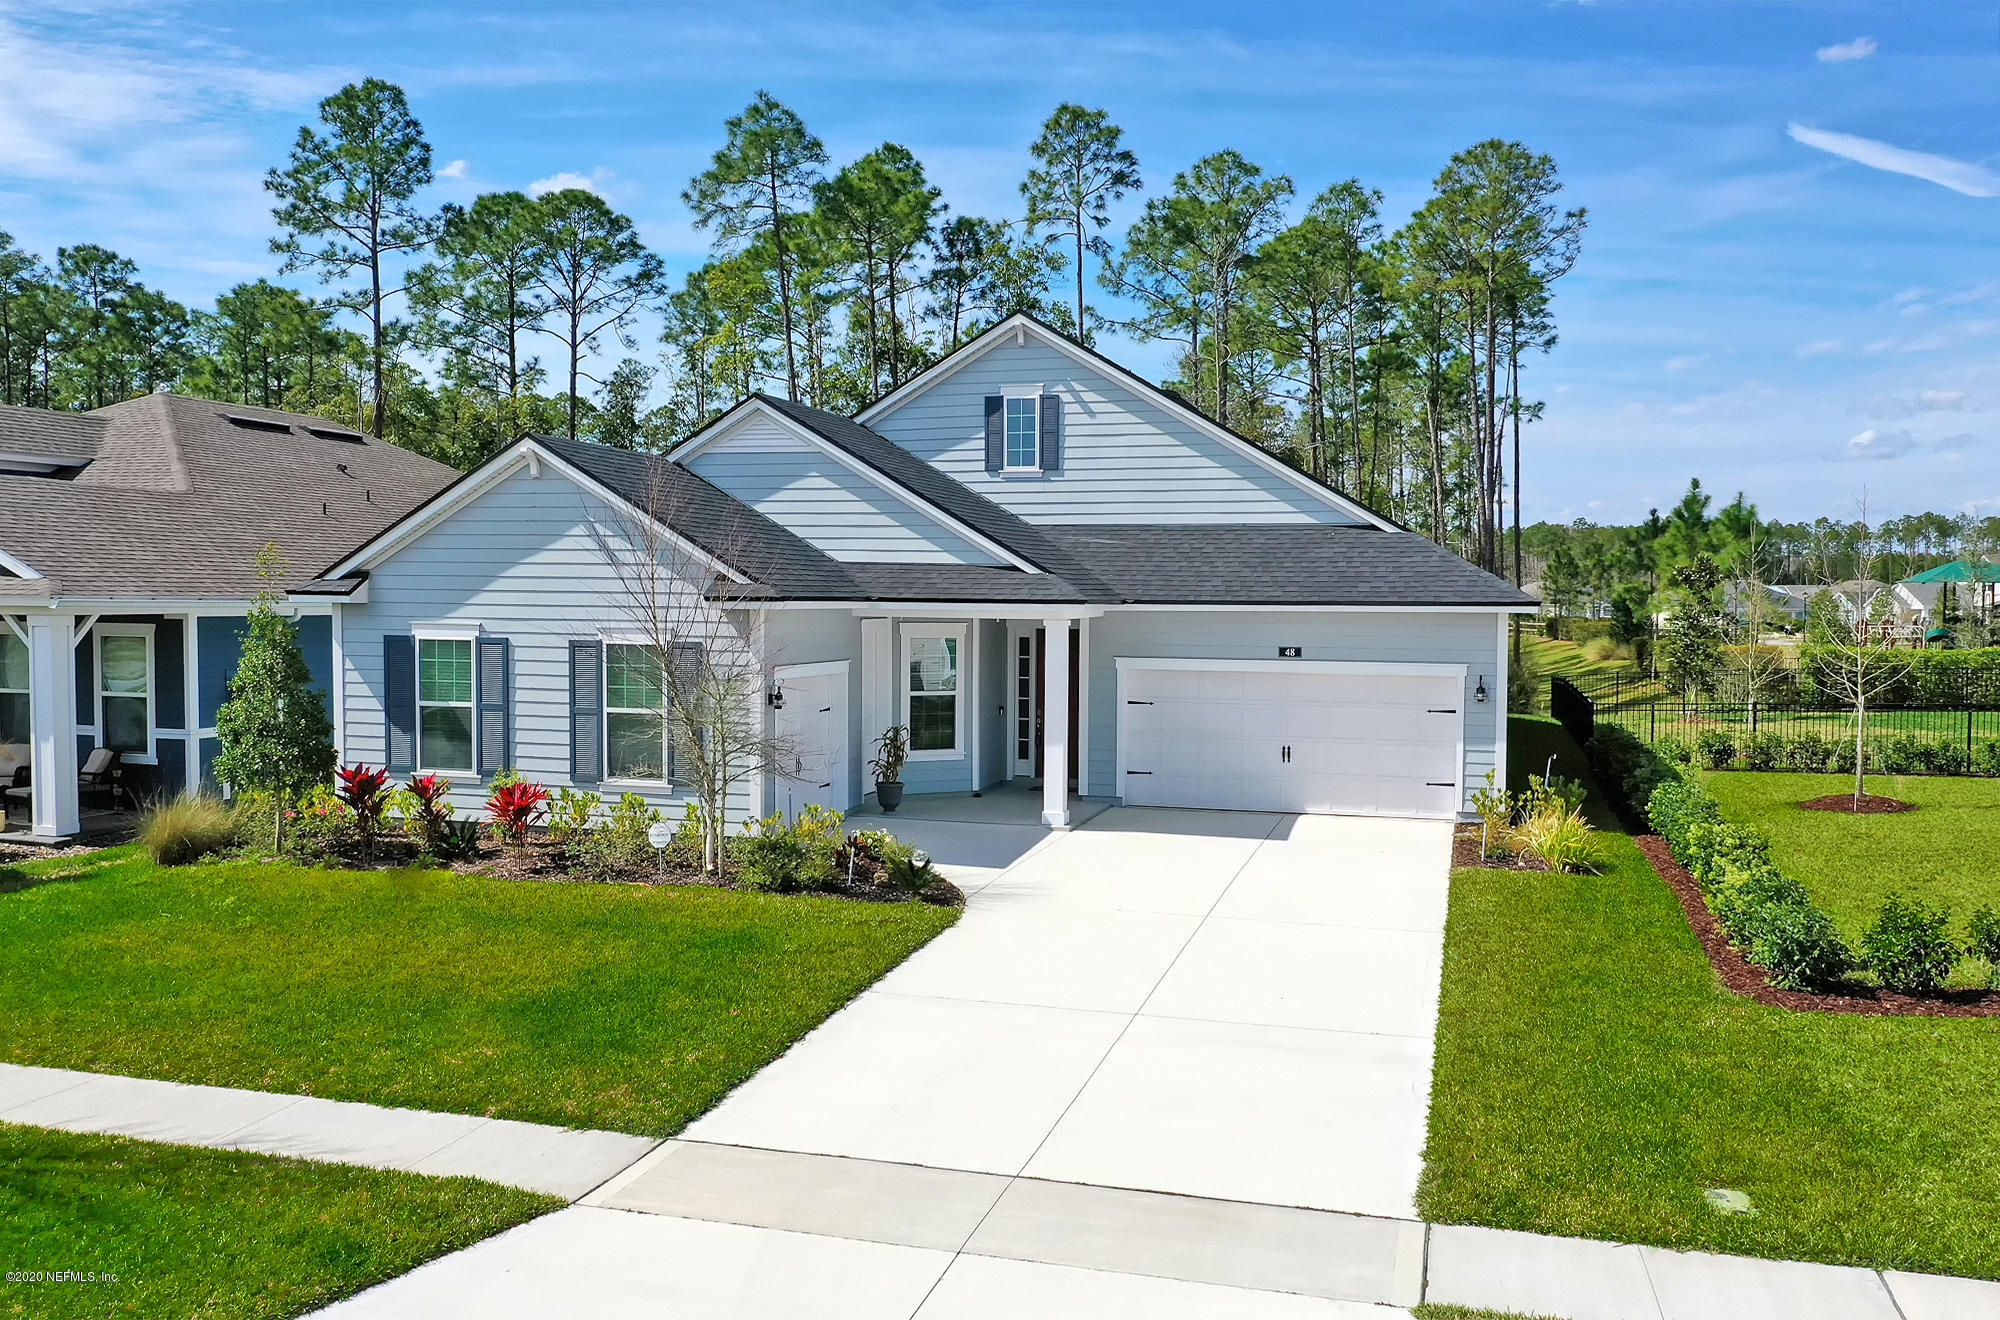 48 FESTING GROVE, JACKSONVILLE, FLORIDA 32081, 4 Bedrooms Bedrooms, ,3 BathroomsBathrooms,Residential,For sale,FESTING GROVE,1039196